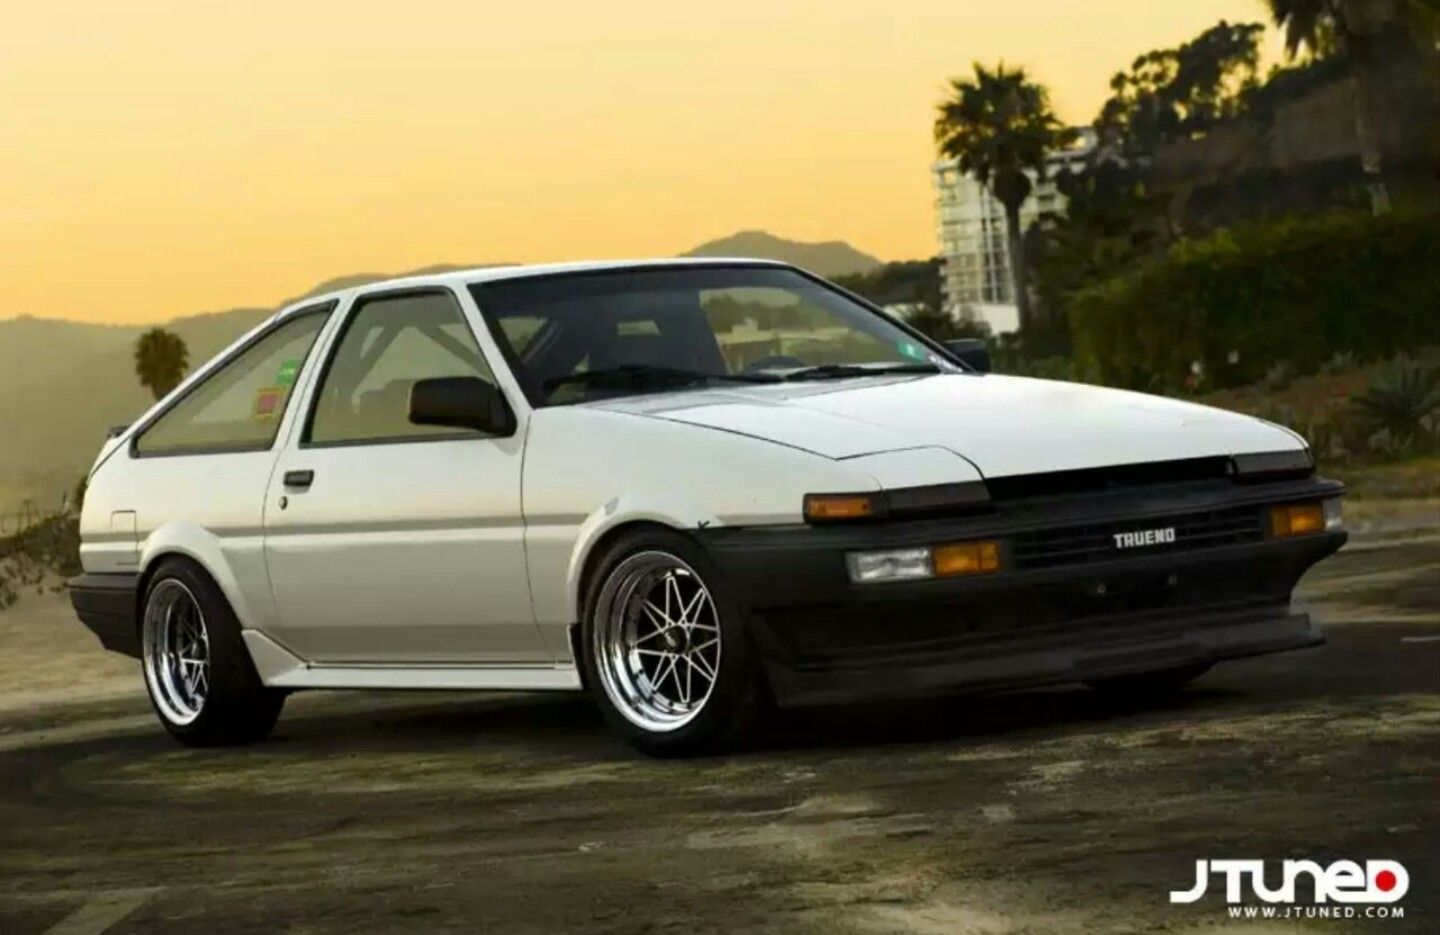 Image result for trueno rat modded old schools pinterest ae86 and rats